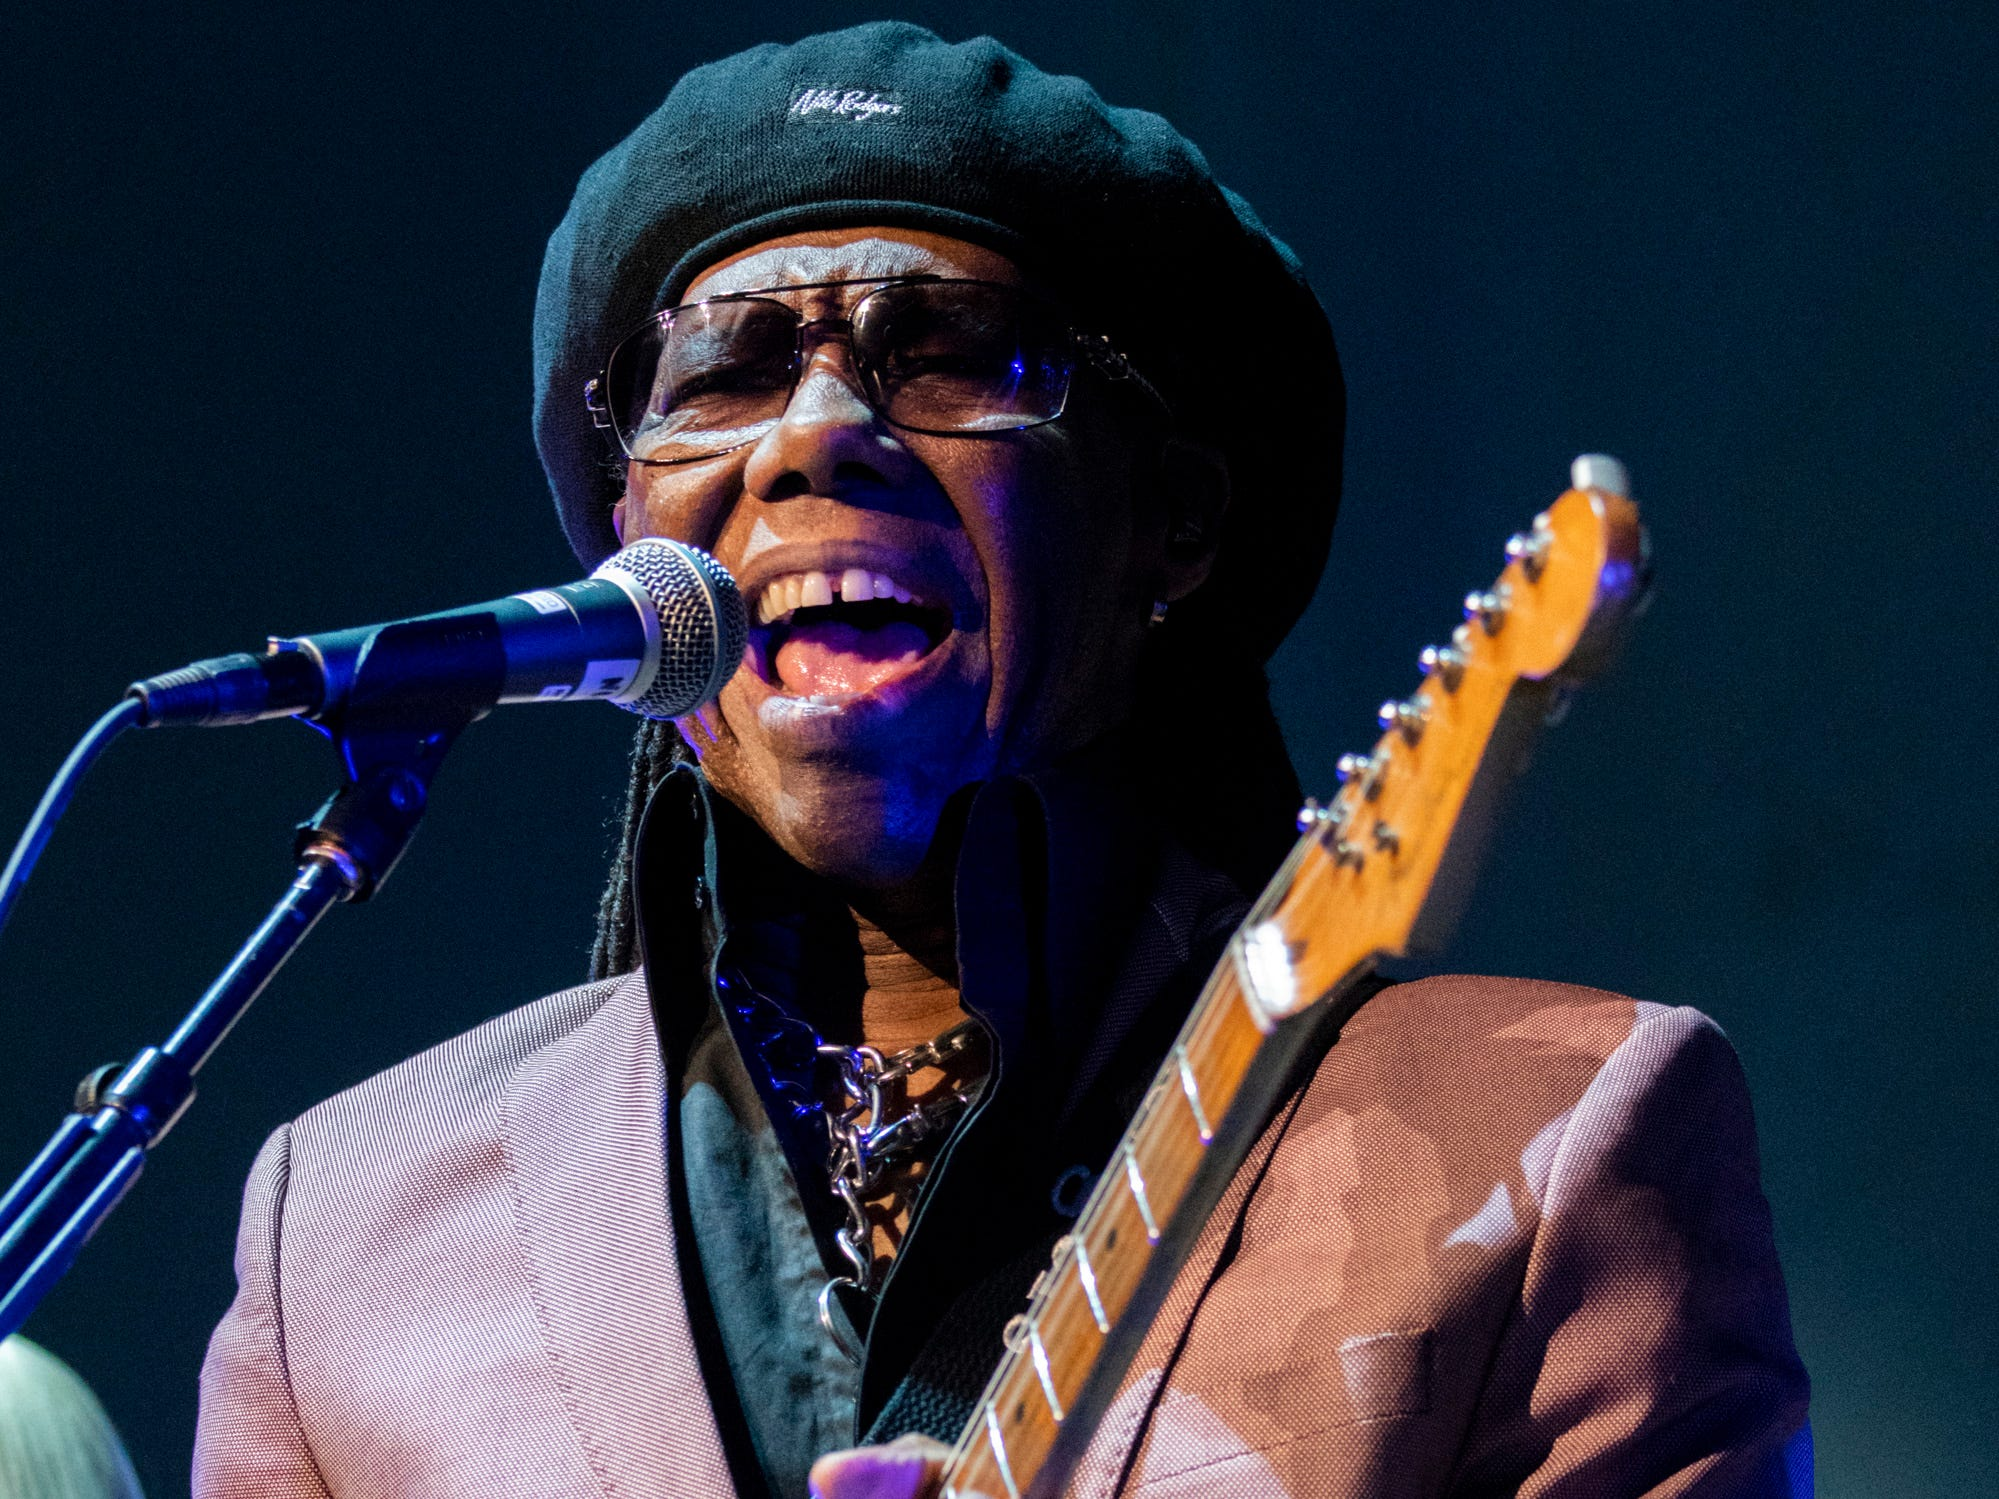 Nile Rodgers and CHIC open up for Cher during the Here We Go Again Tour at Bridgestone Arena in Nashville, Tenn., Thursday, Jan. 31, 2019.